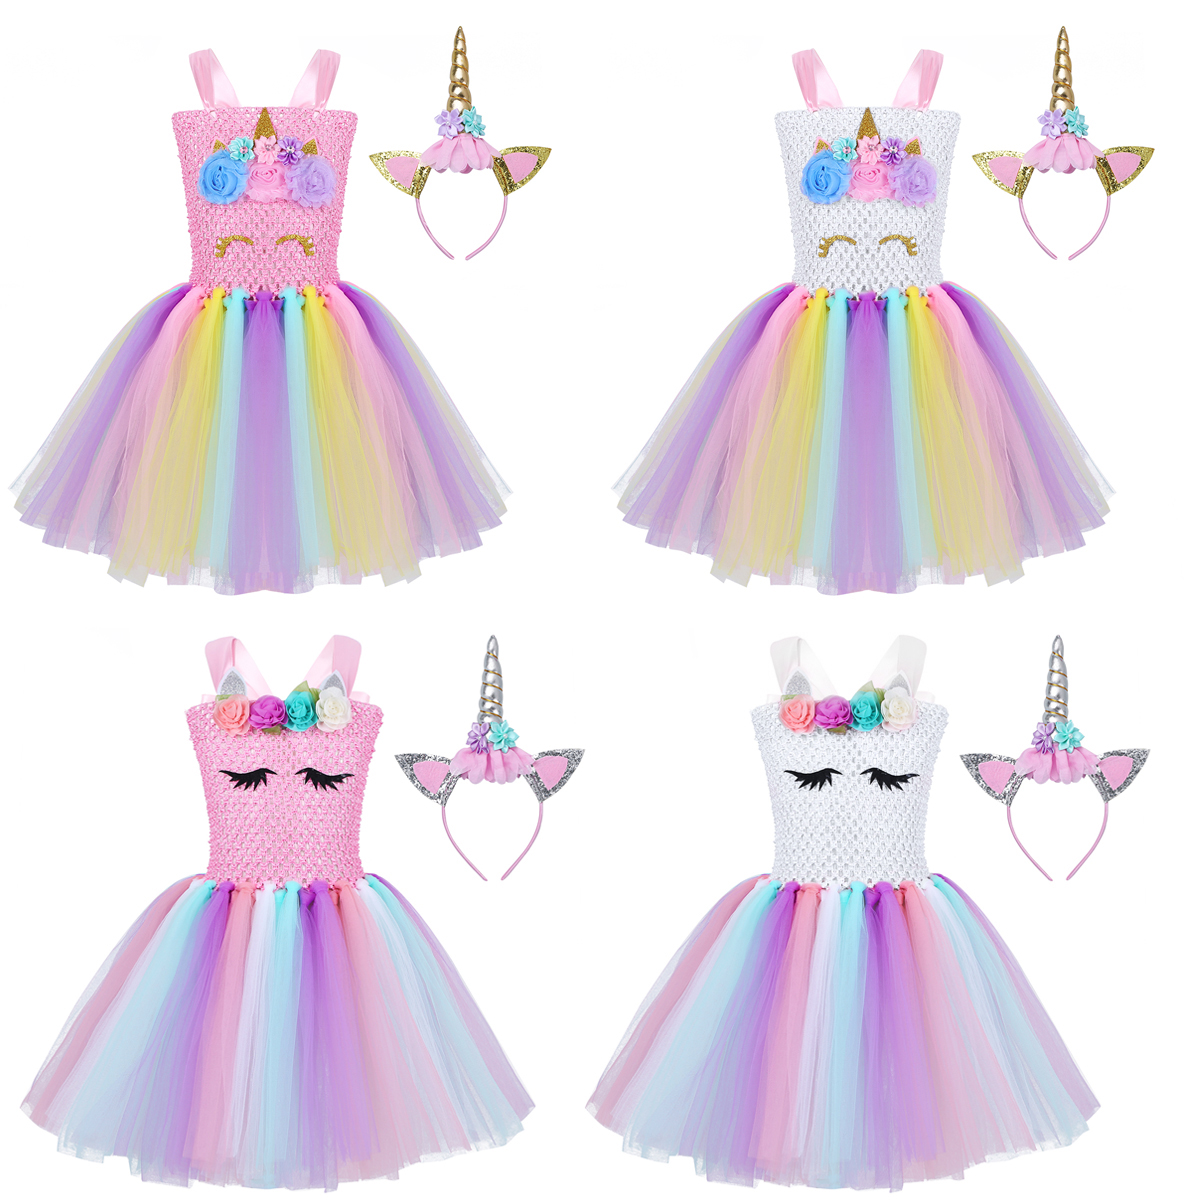 Adult Elf Butterfly Wings Fairy Dress Up Girls Costume Gift Photo Props UK ABS